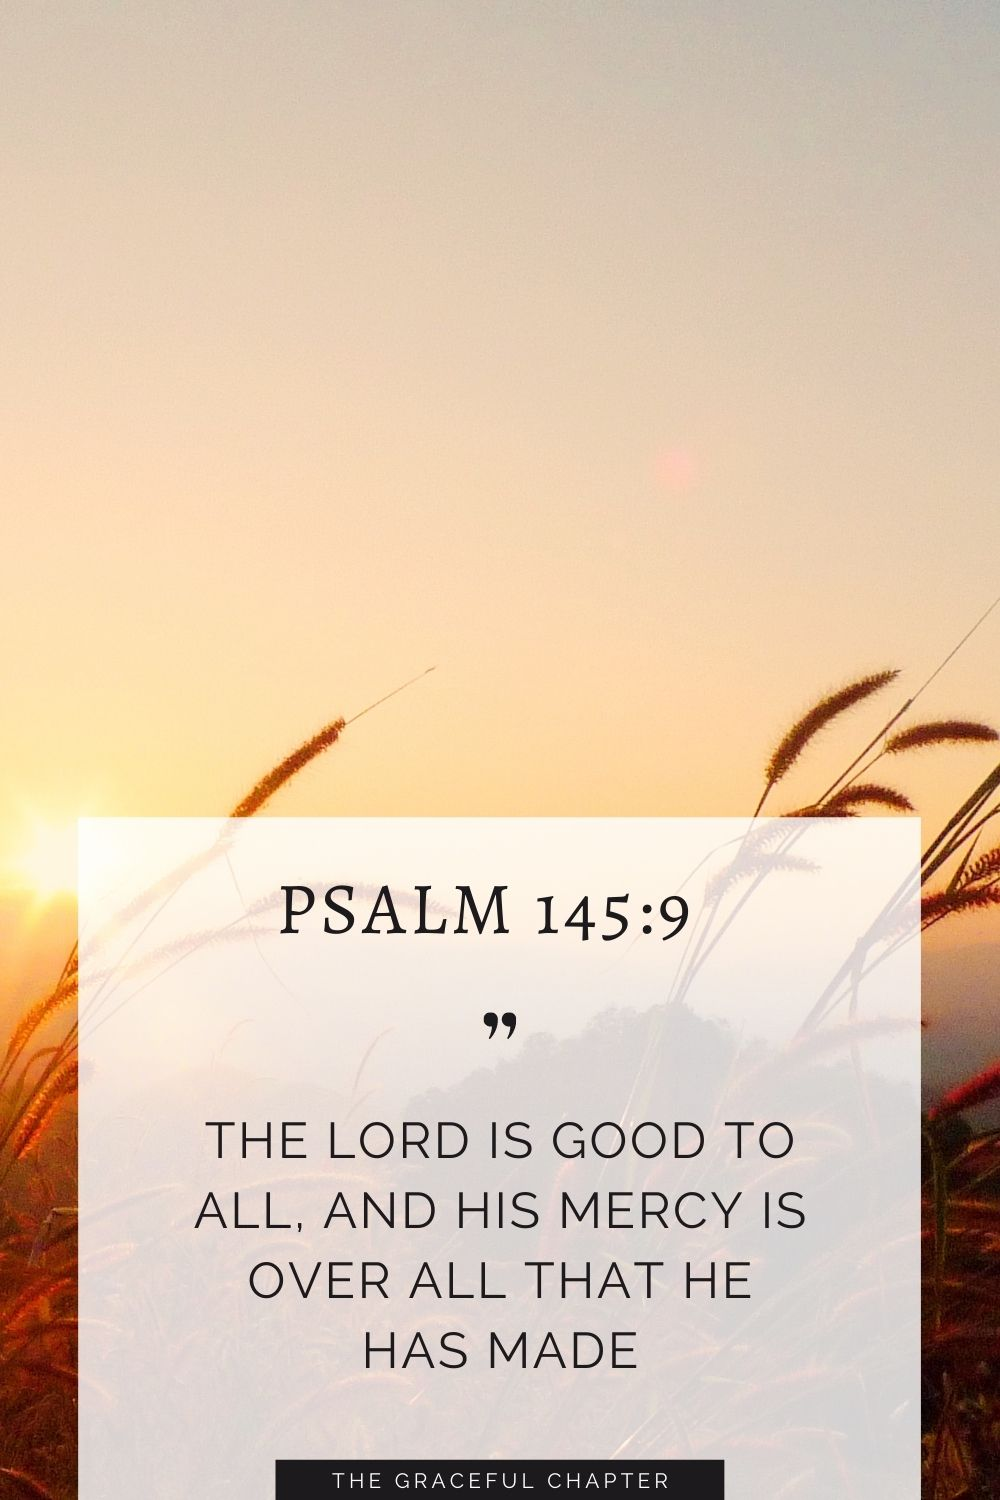 The Lord is good to all, and his mercy is over all that he has made. Psalm145:9